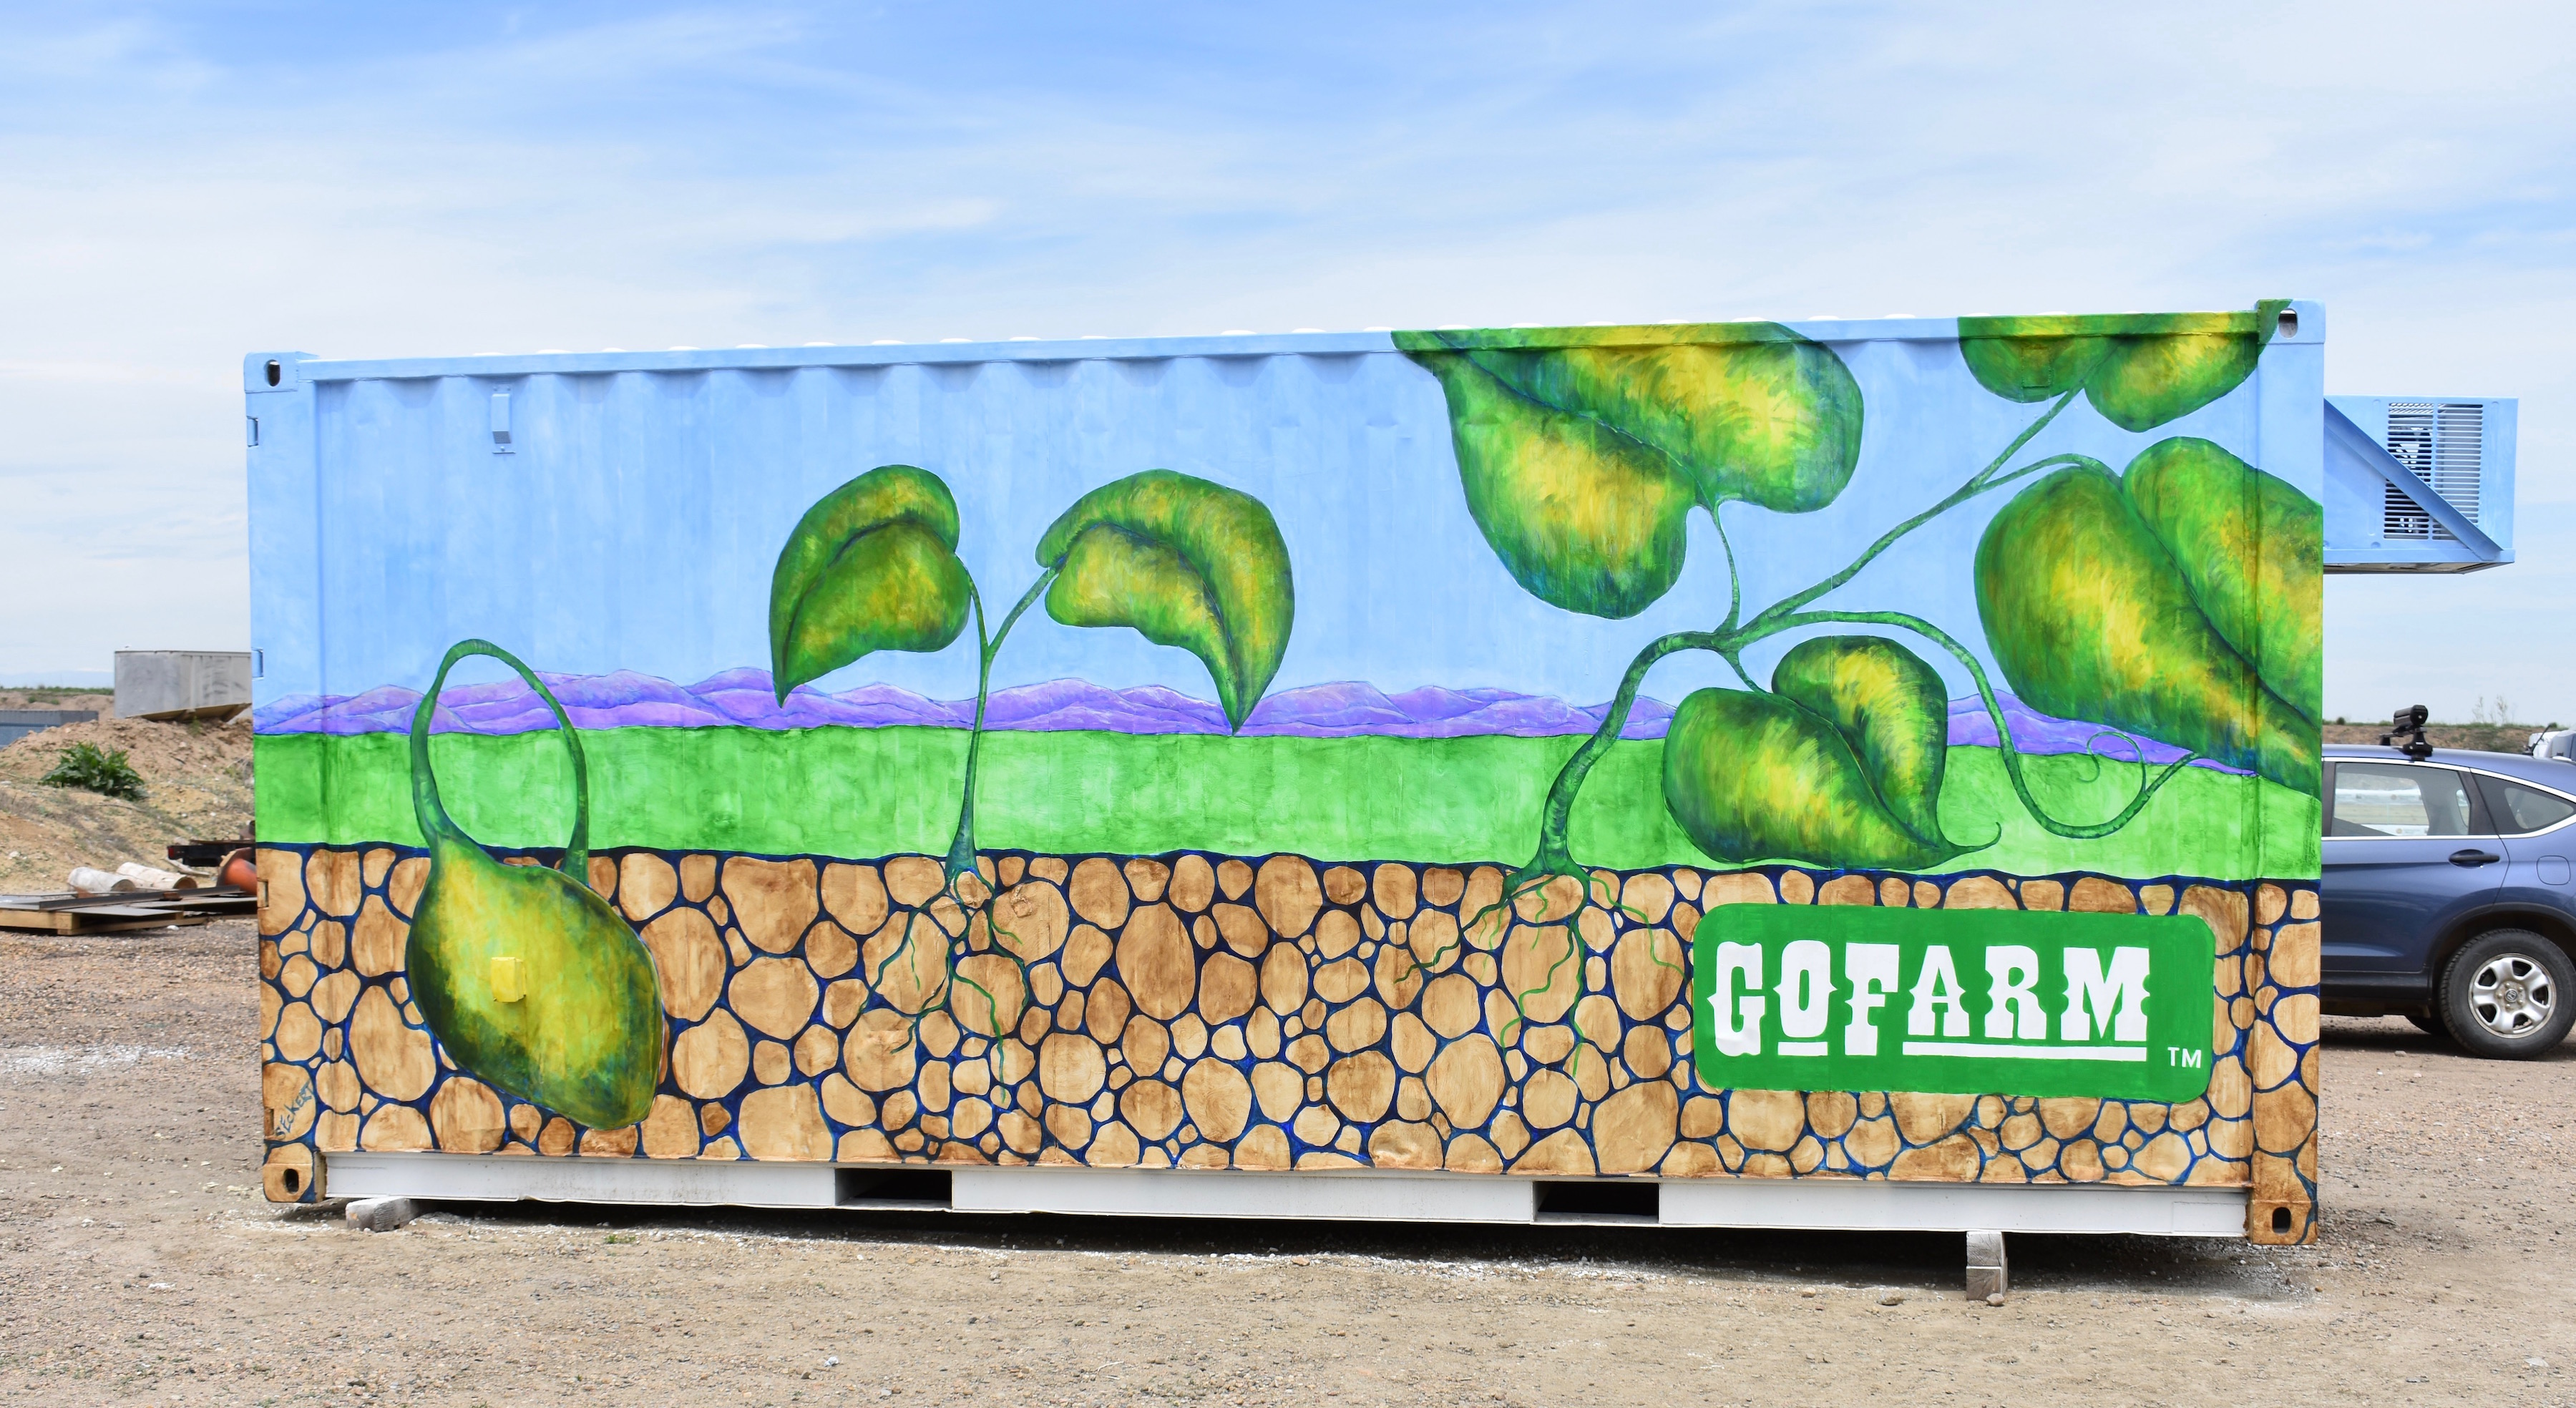 The new GoFarm container in Arvada